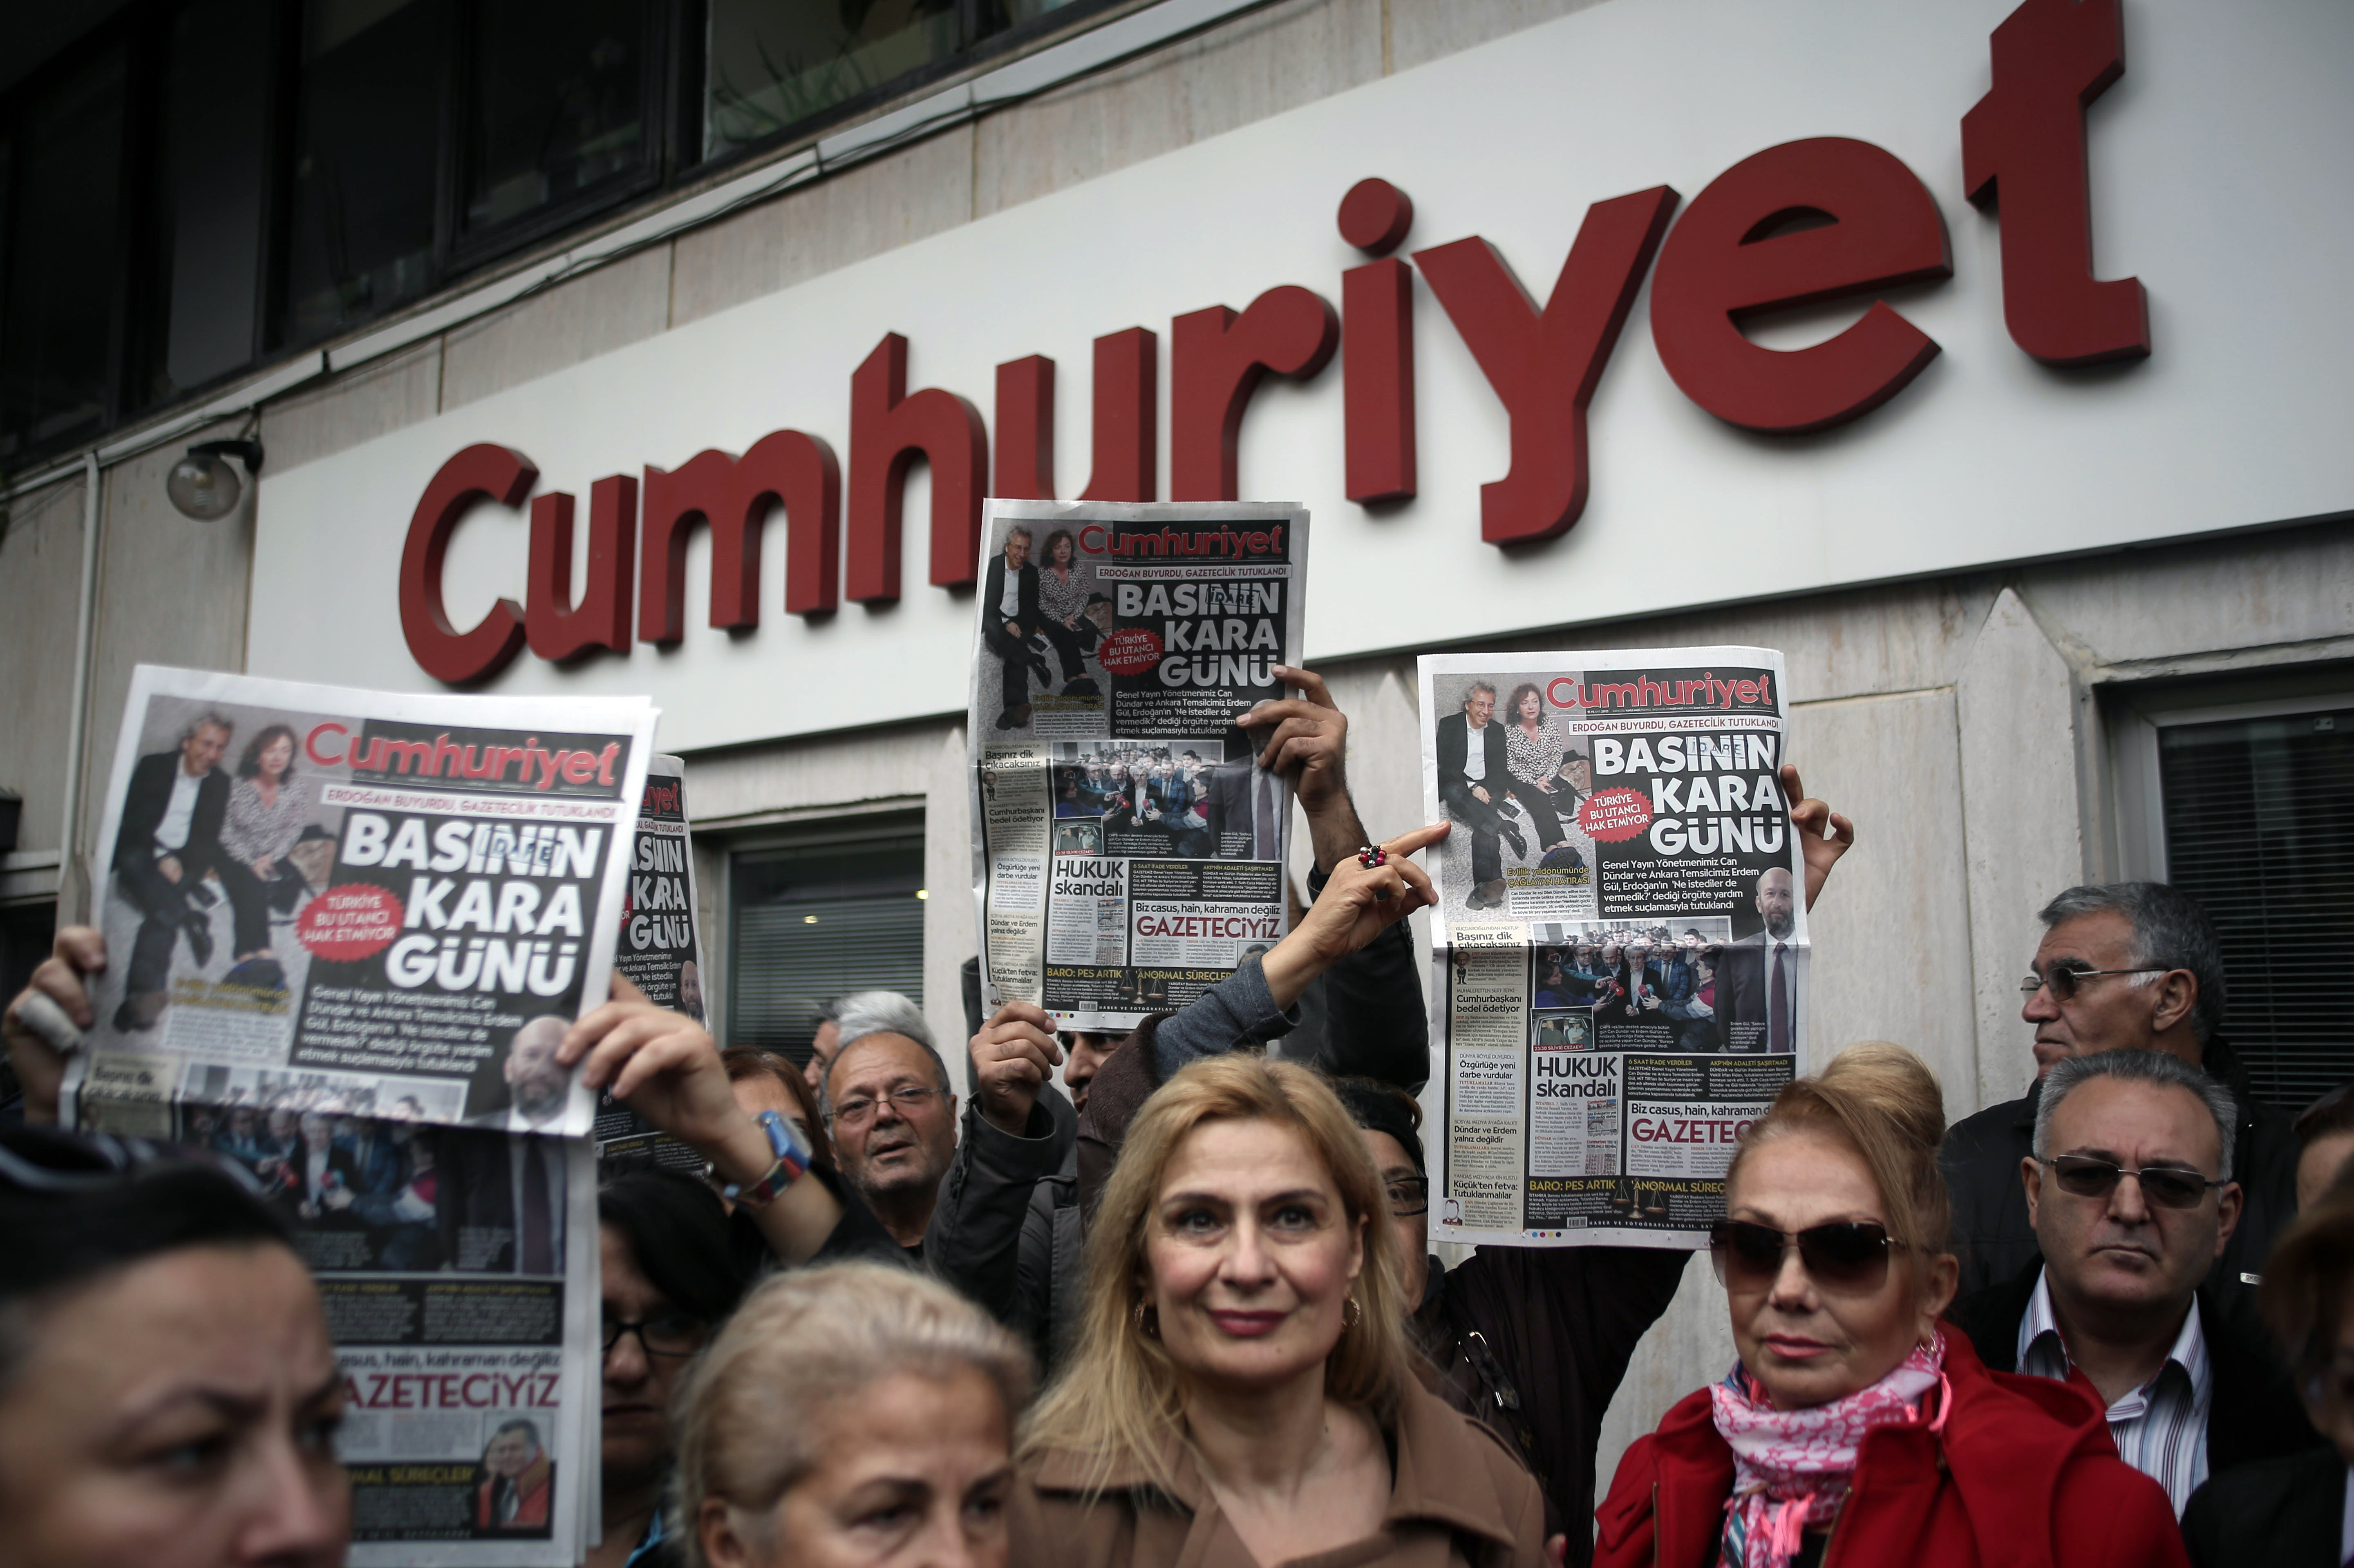 People gather to protest the jailing of opposition Cumhuriyet newspaper's editor-in-chief Can Dundar and Ankara representative Erdem Gul, in Istanbul, Turkey, Friday, Nov. 27, 2015